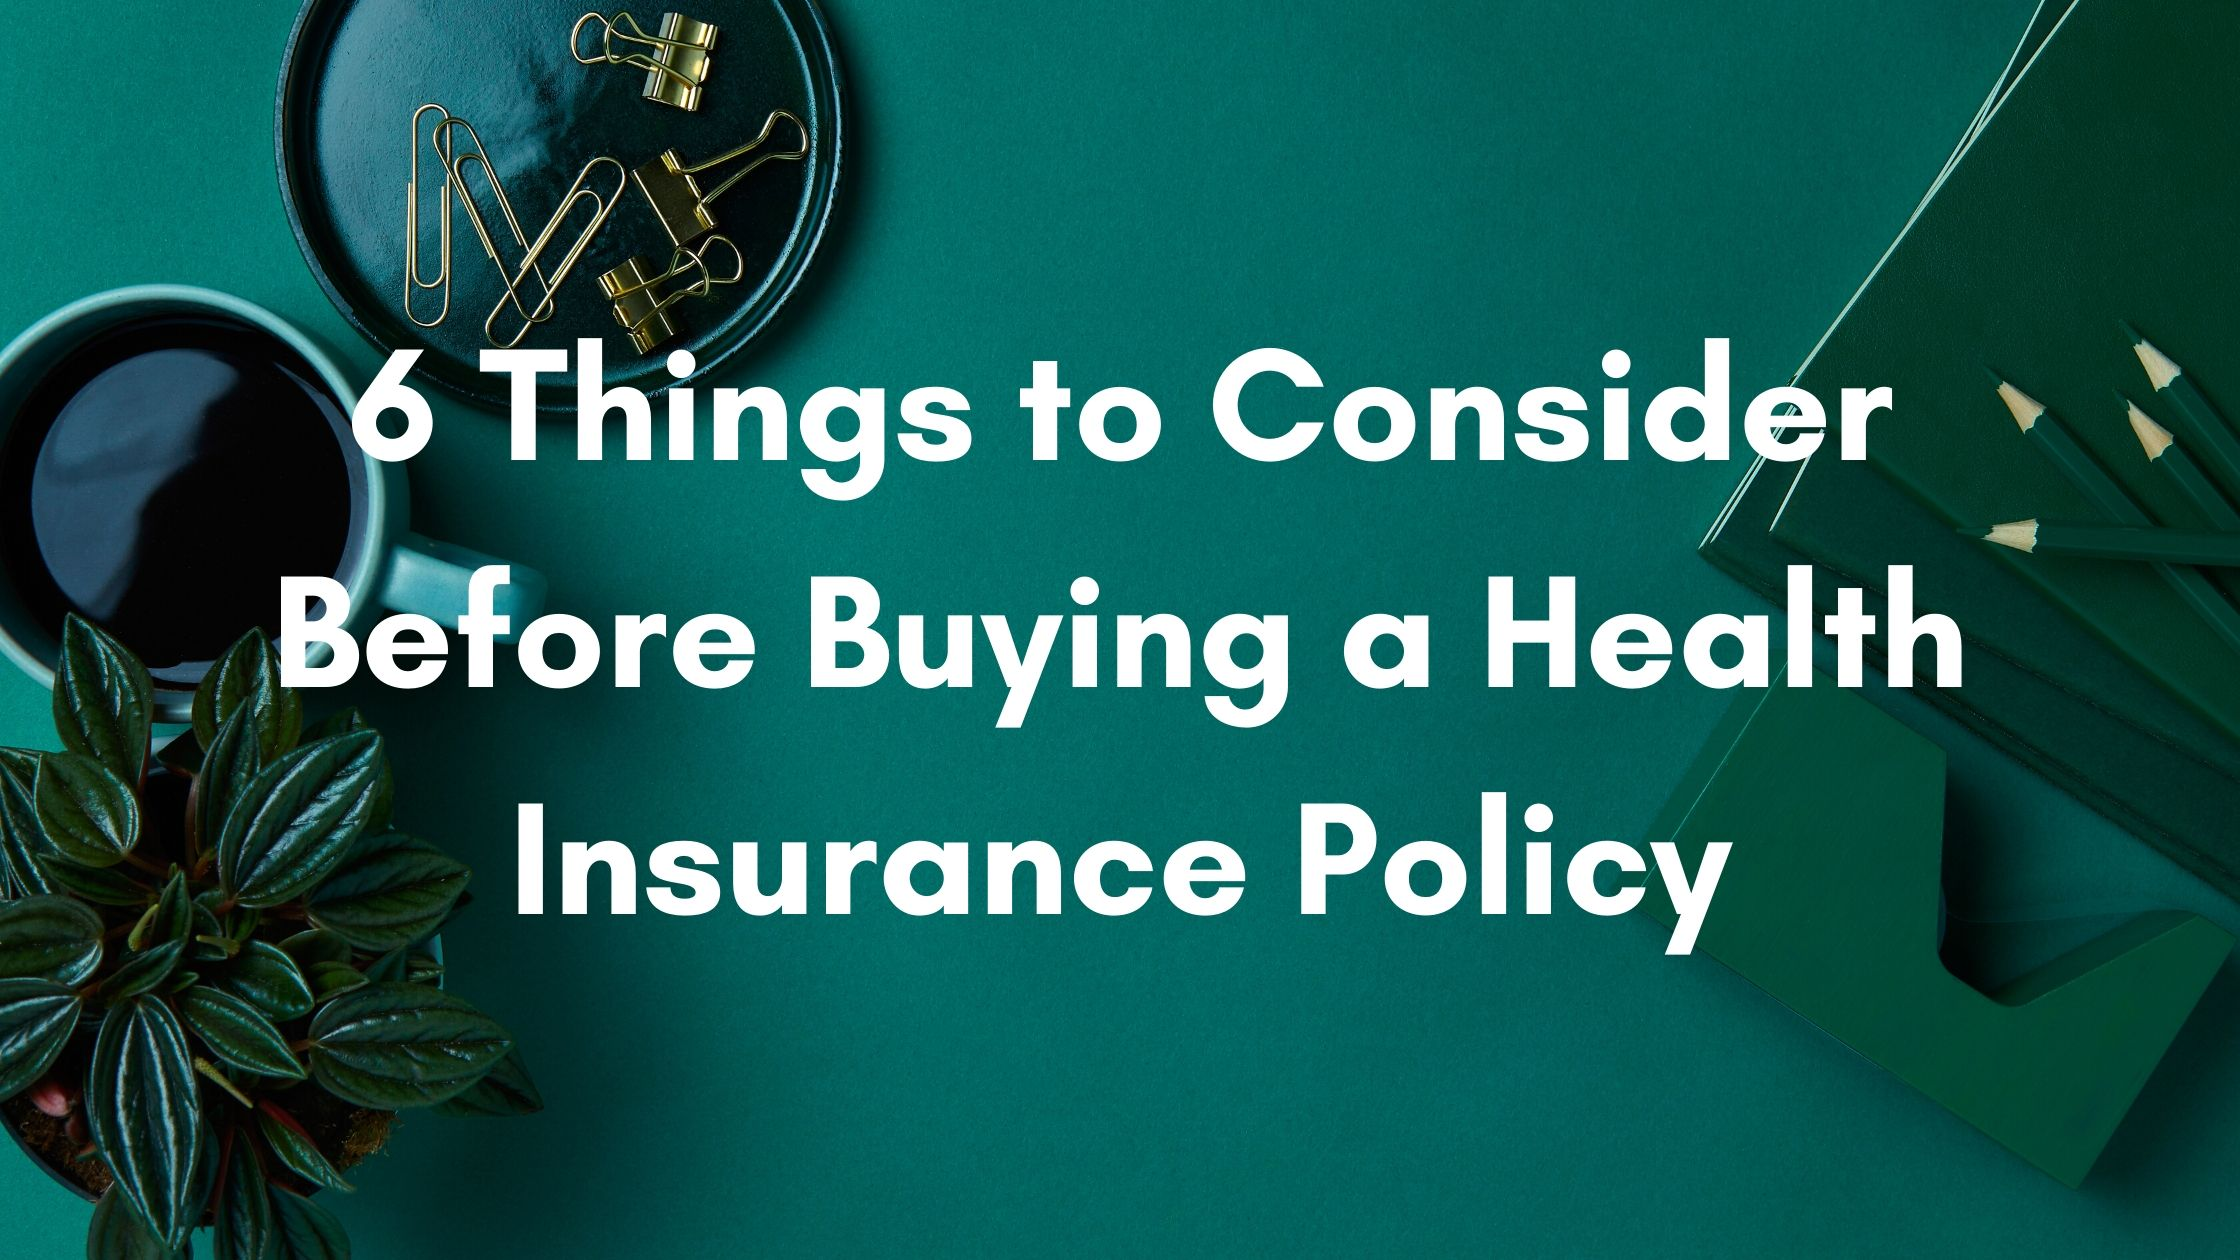 6 Things to Consider Before Buying a Health Insurance Policy